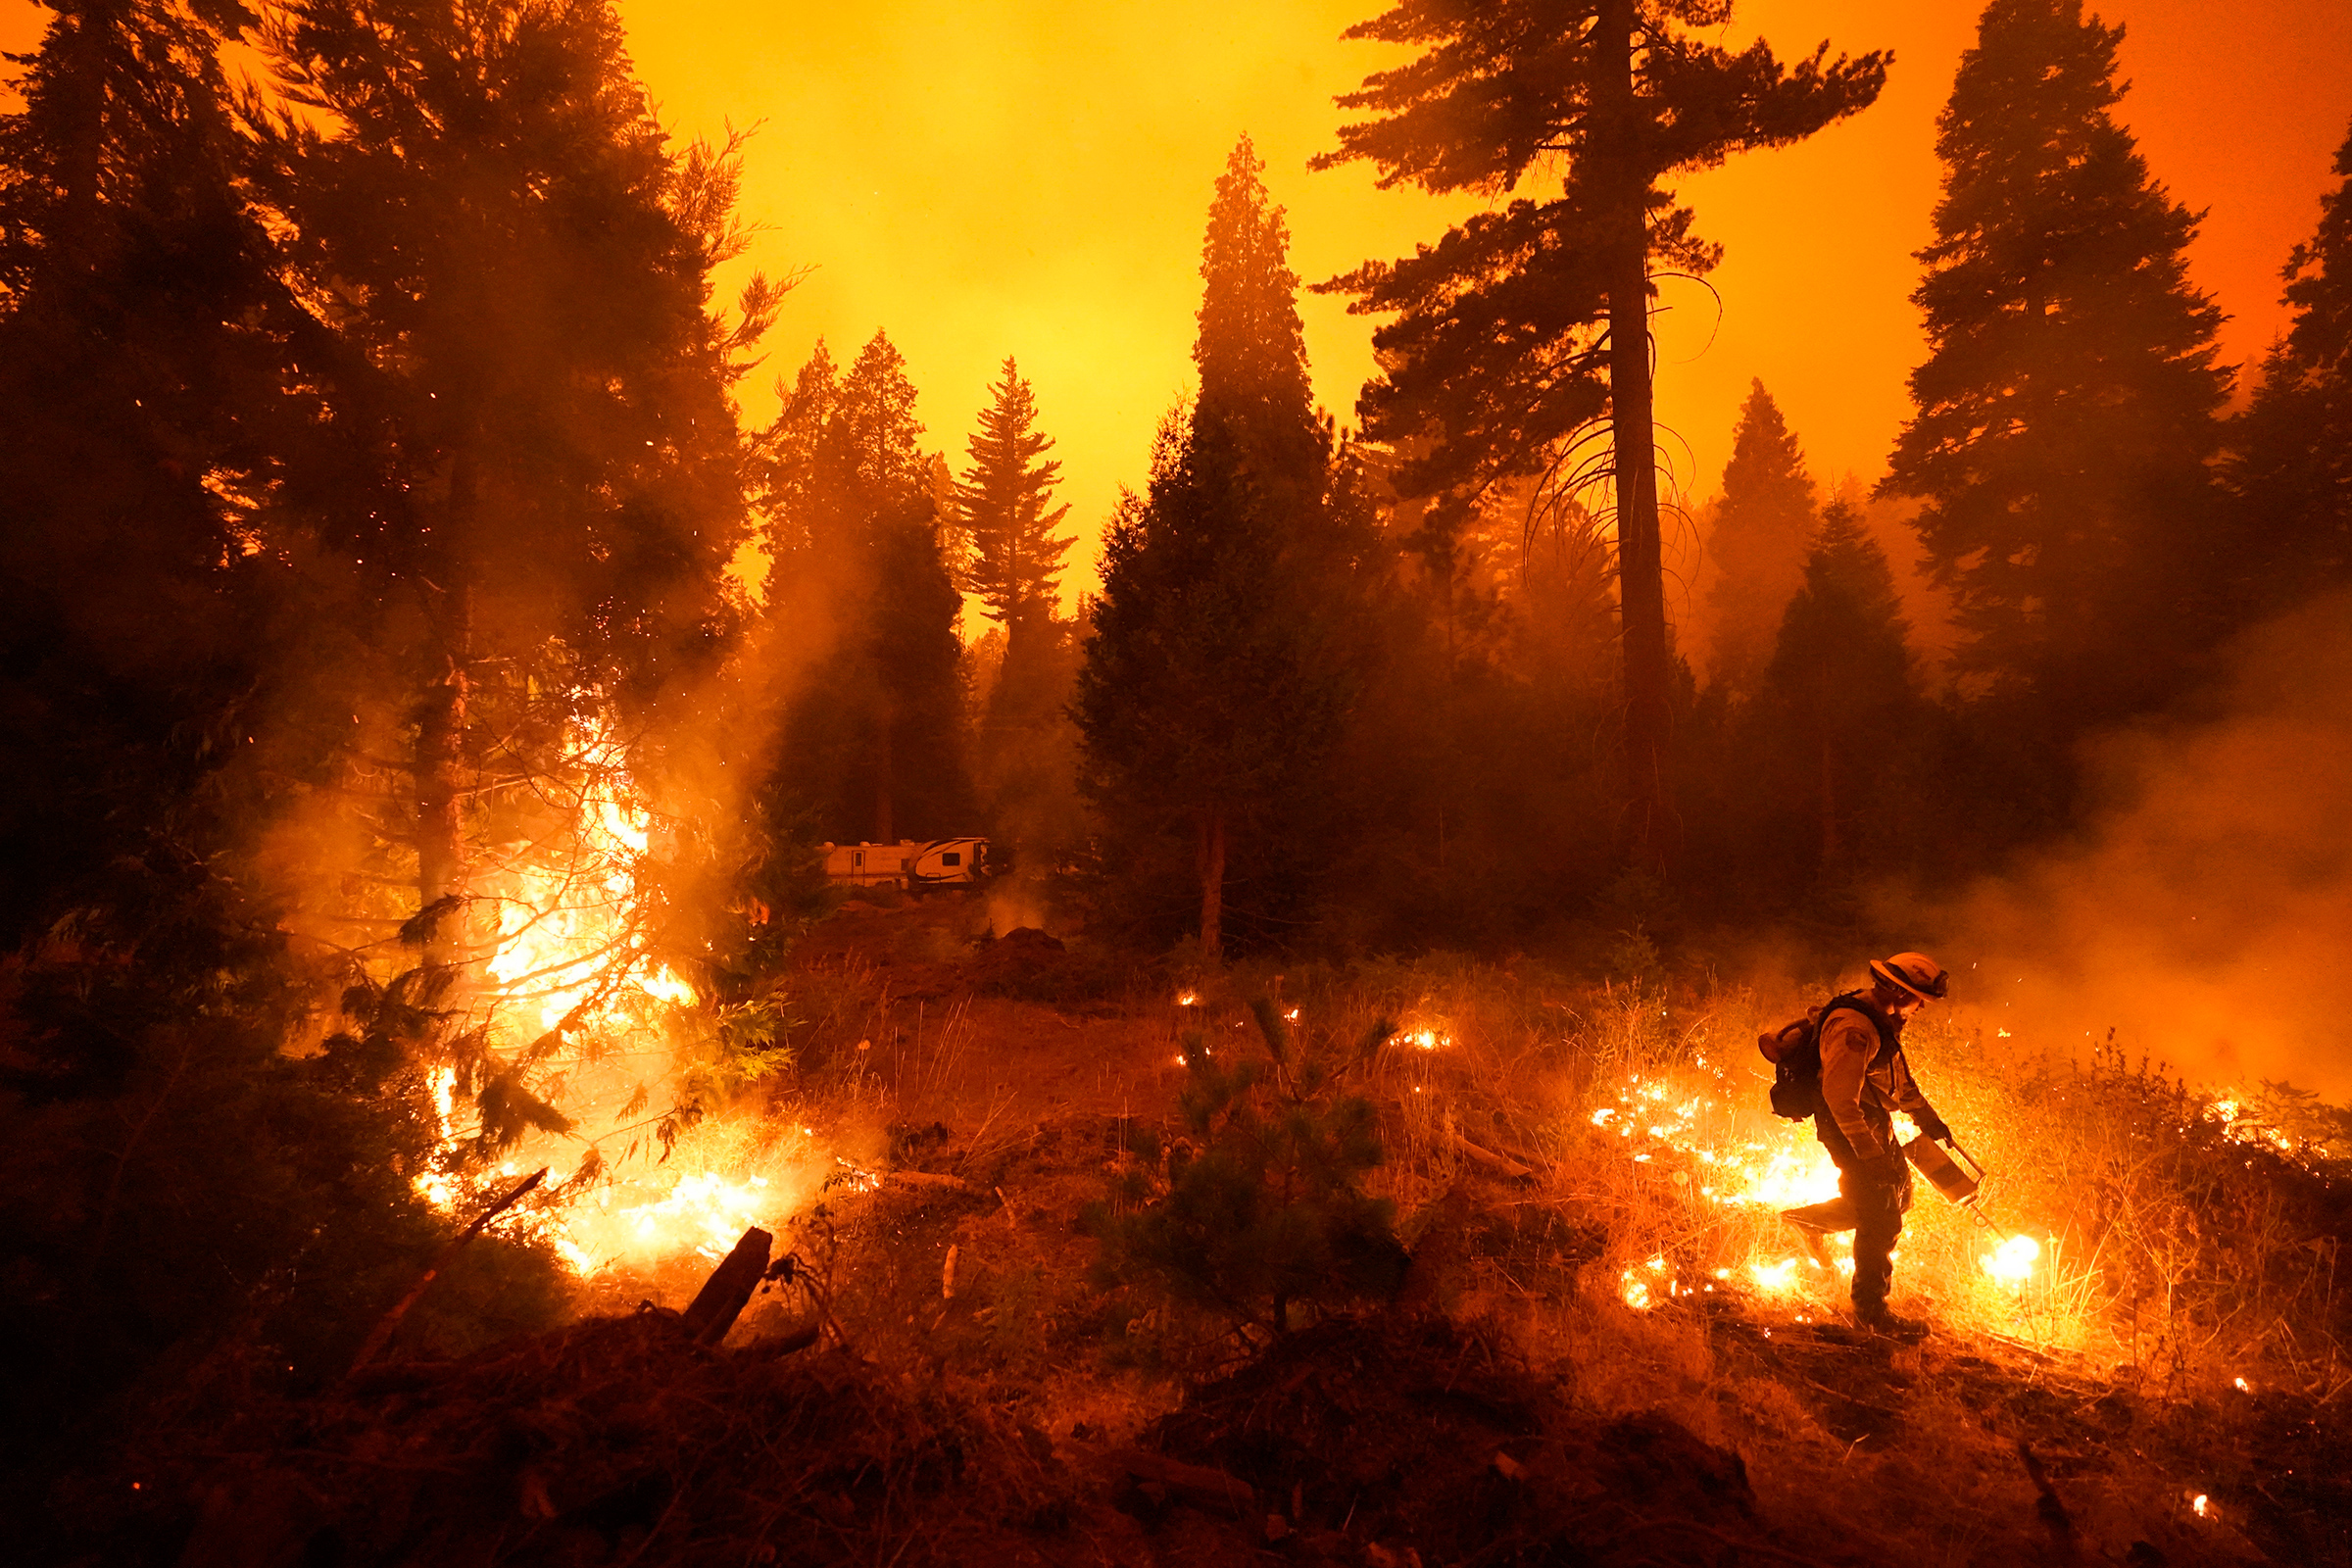 Firefighter Ricardo Gomez, part of a San Benito Monterey Cal Fire crew, sets a controlled burn with a drip torch while fighting the Creek Fire in Shaver Lake, Calif., on Sept. 6, 2020.